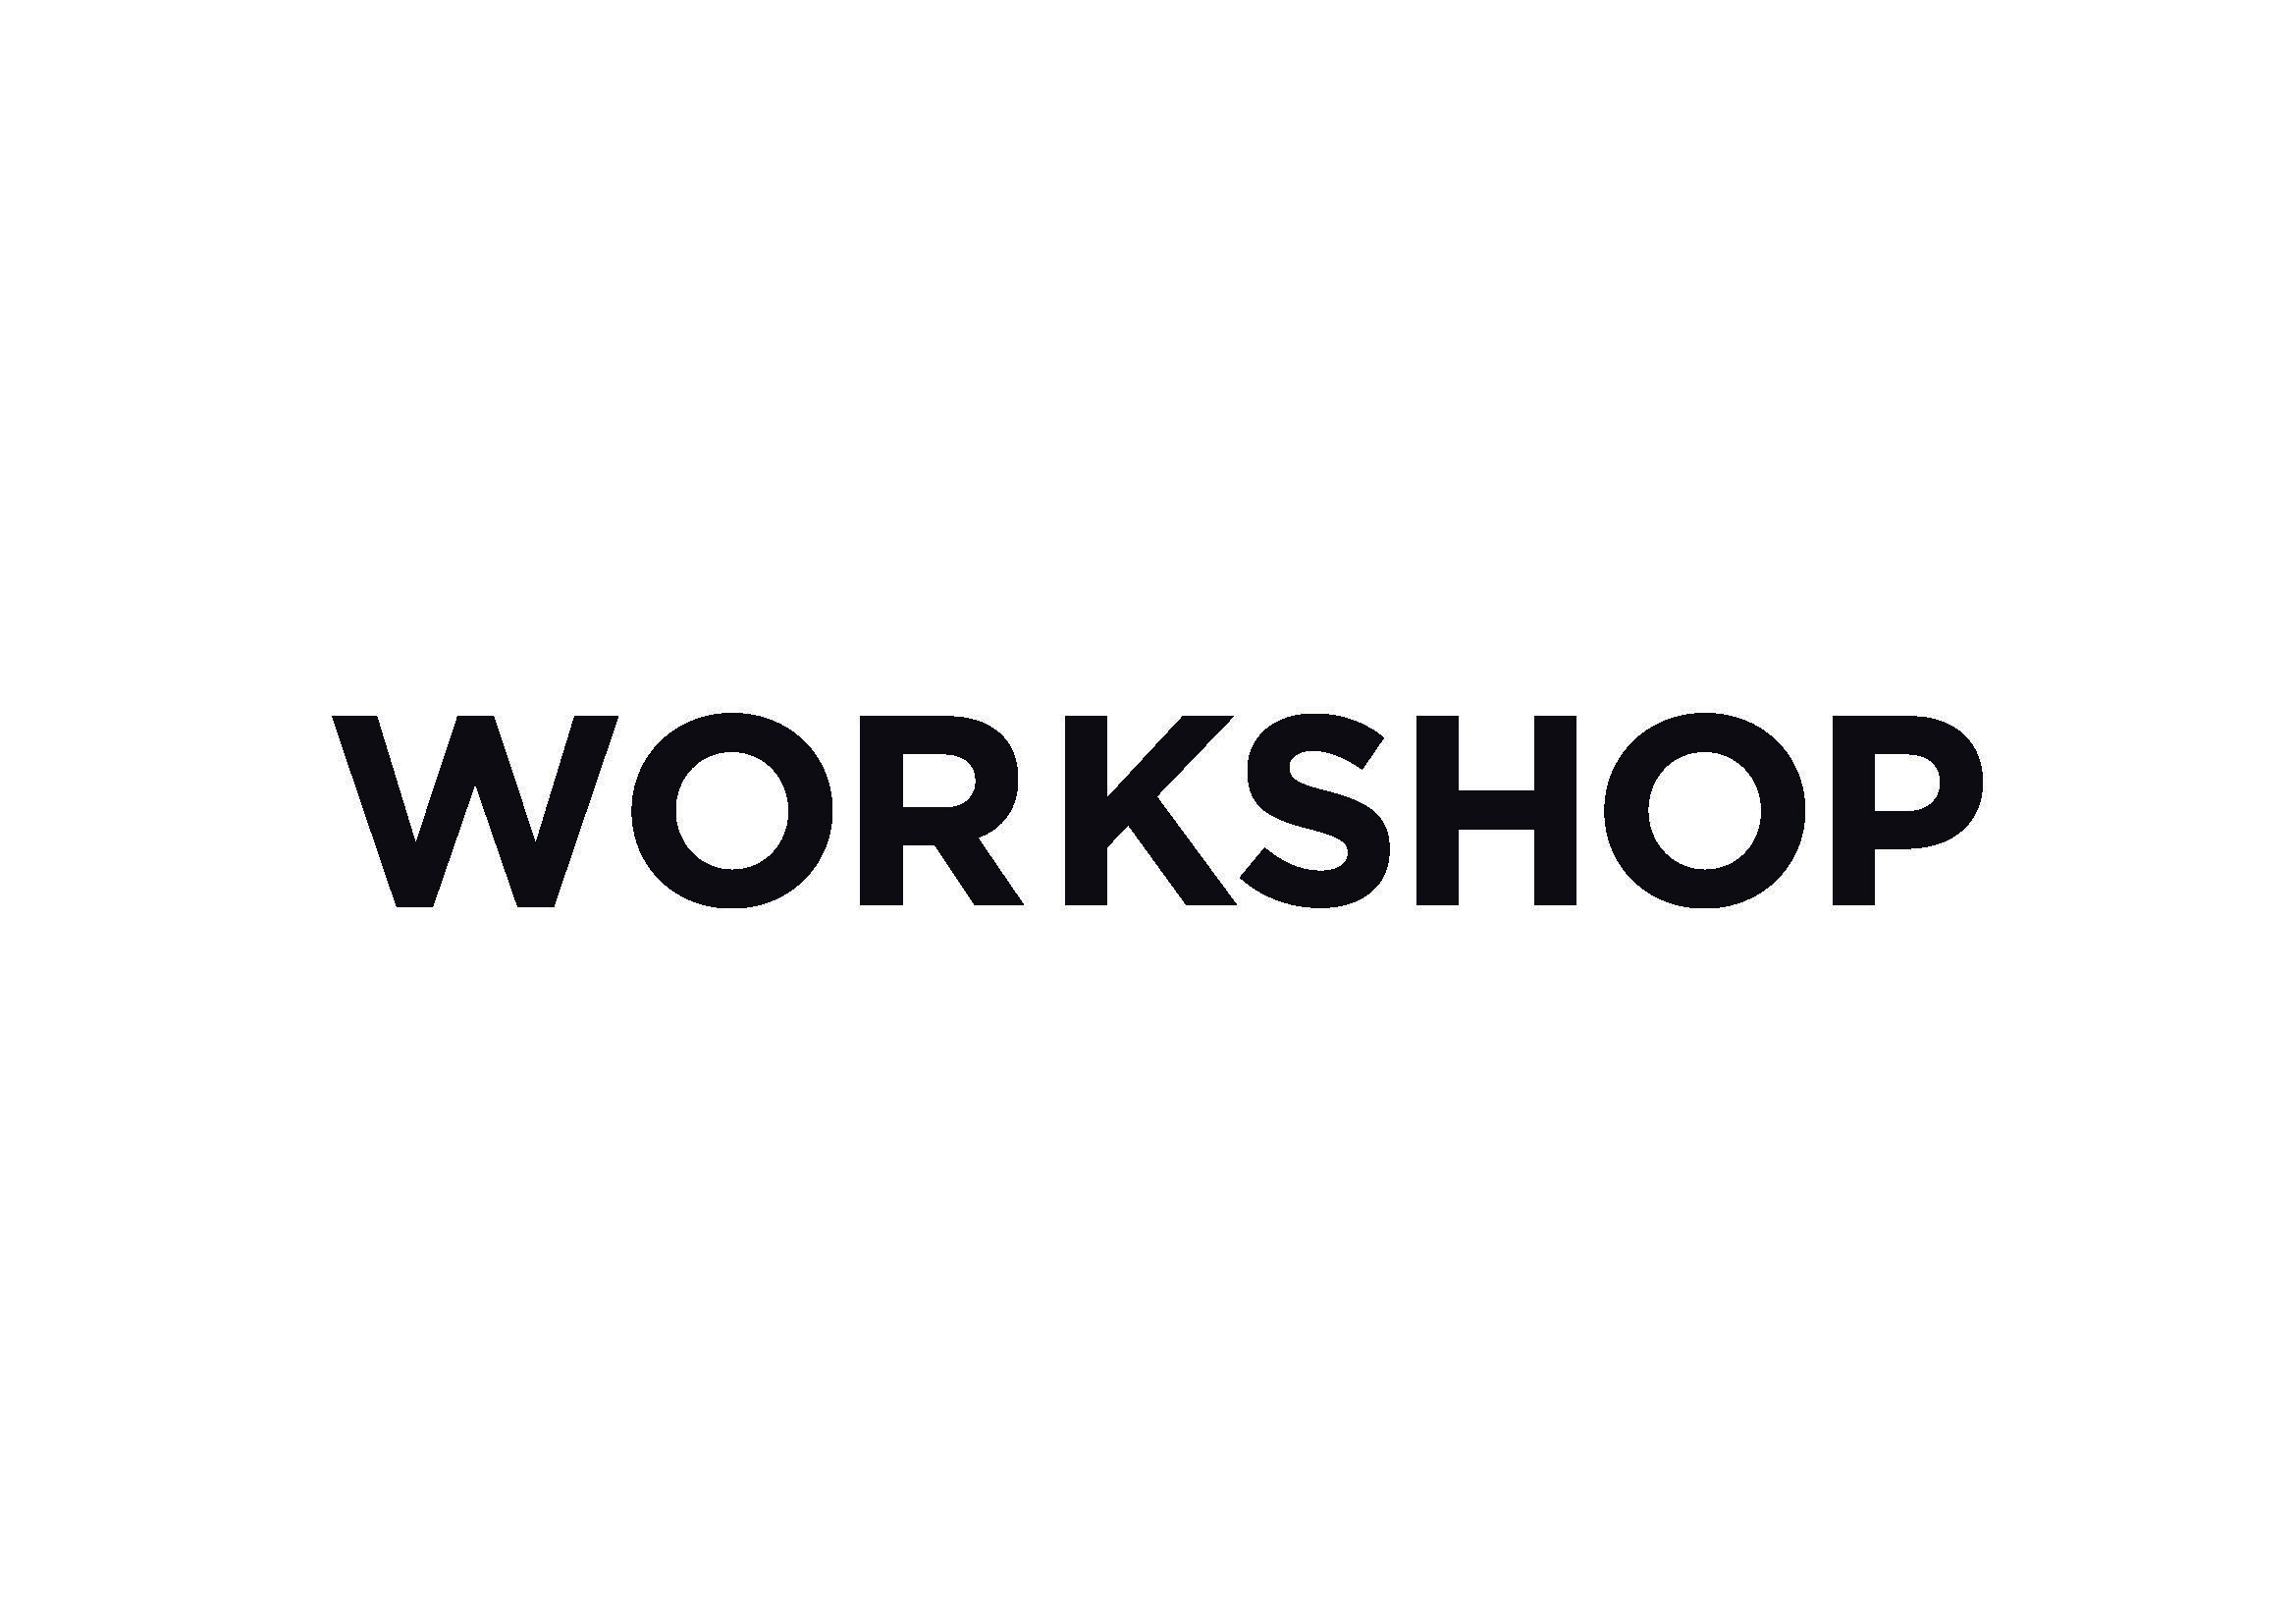 logos Workshop